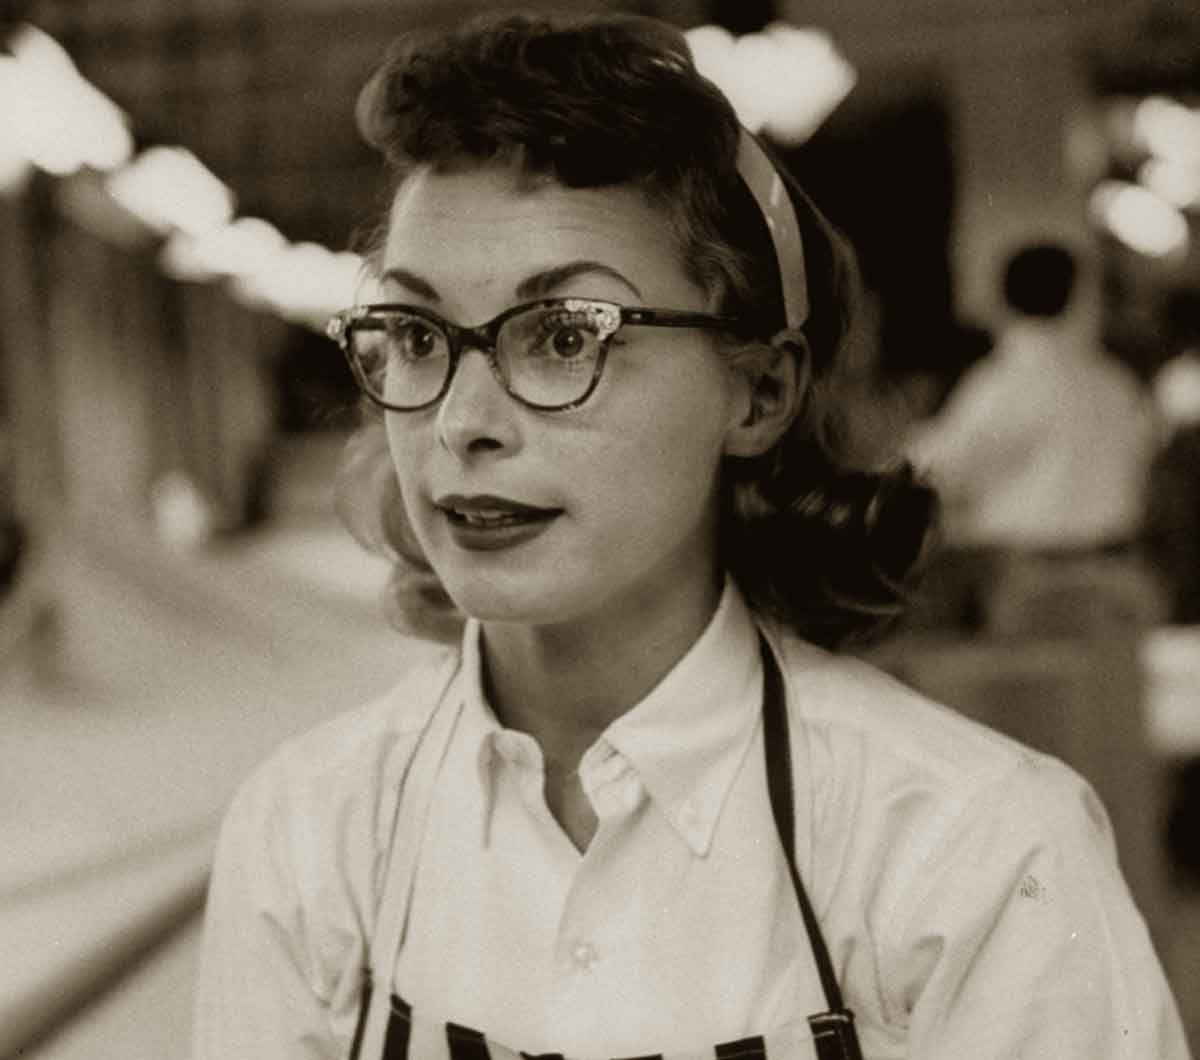 Janet-Leigh-1948 wearing glasses